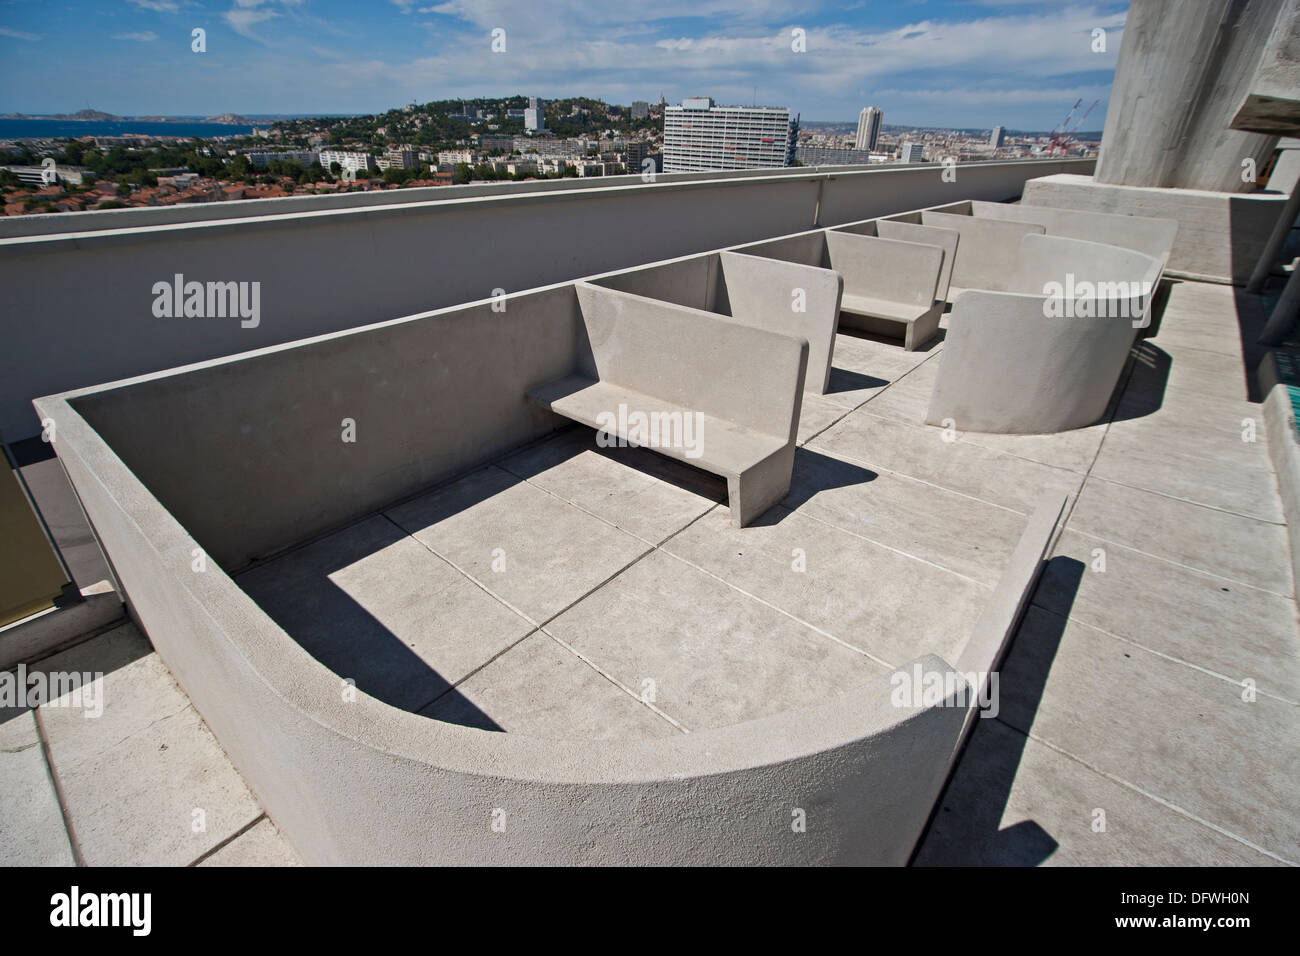 The roof top view terrace on the modernist residential housing The Unité d'Habitation designed  by Le Corbusier - Stock Image